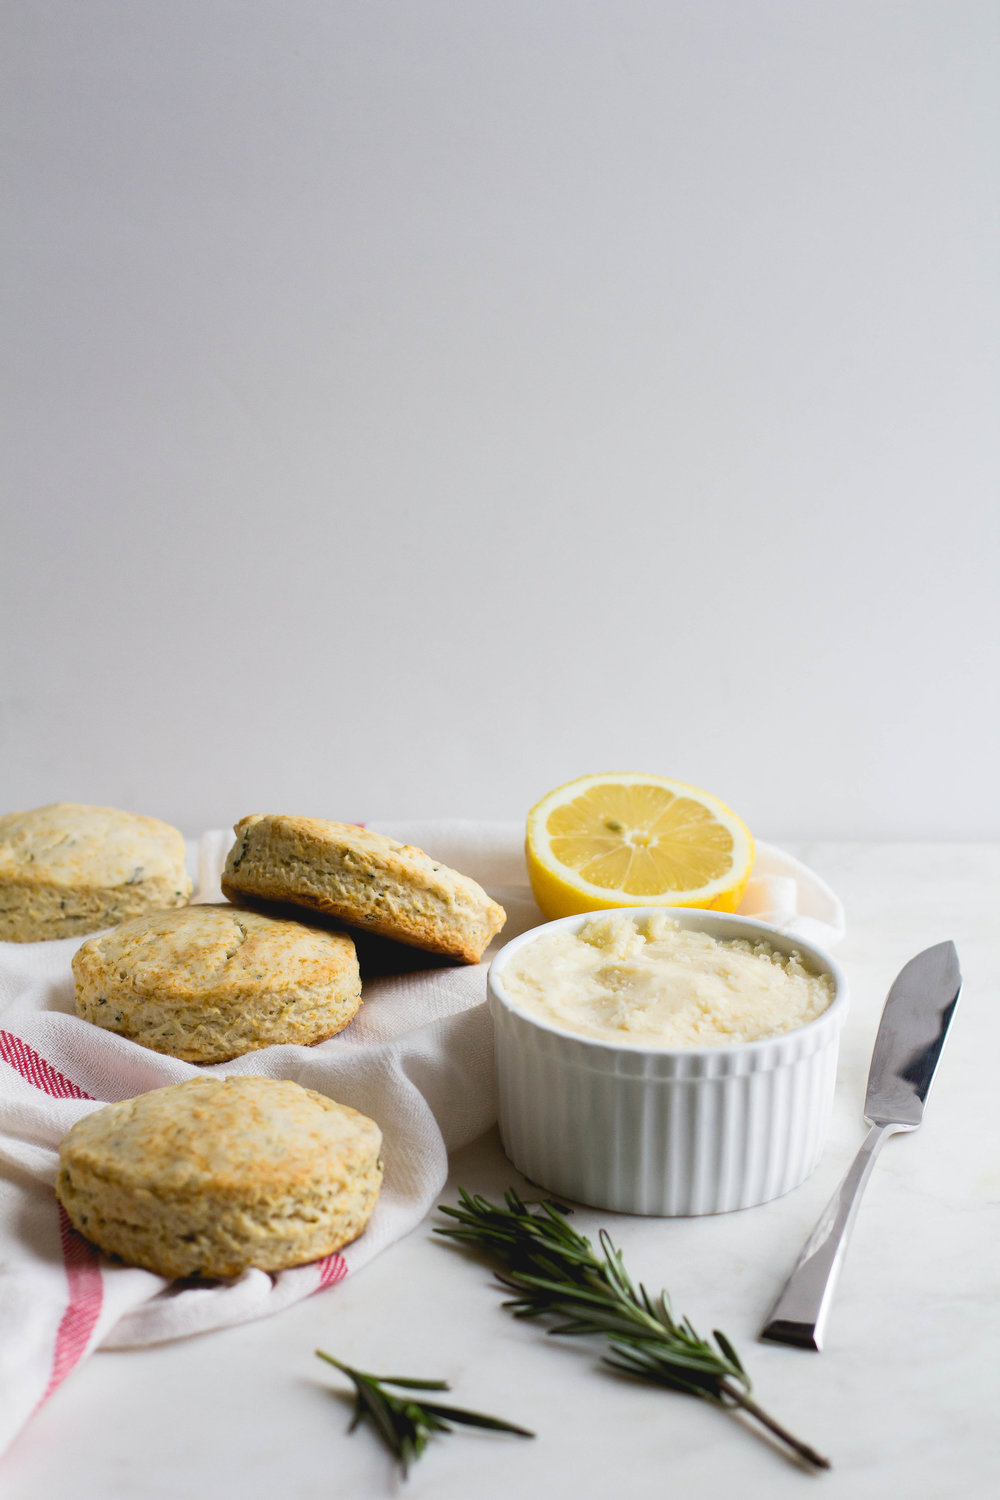 Lemon + Rosemary Biscuits with Lemon-Honey Butter